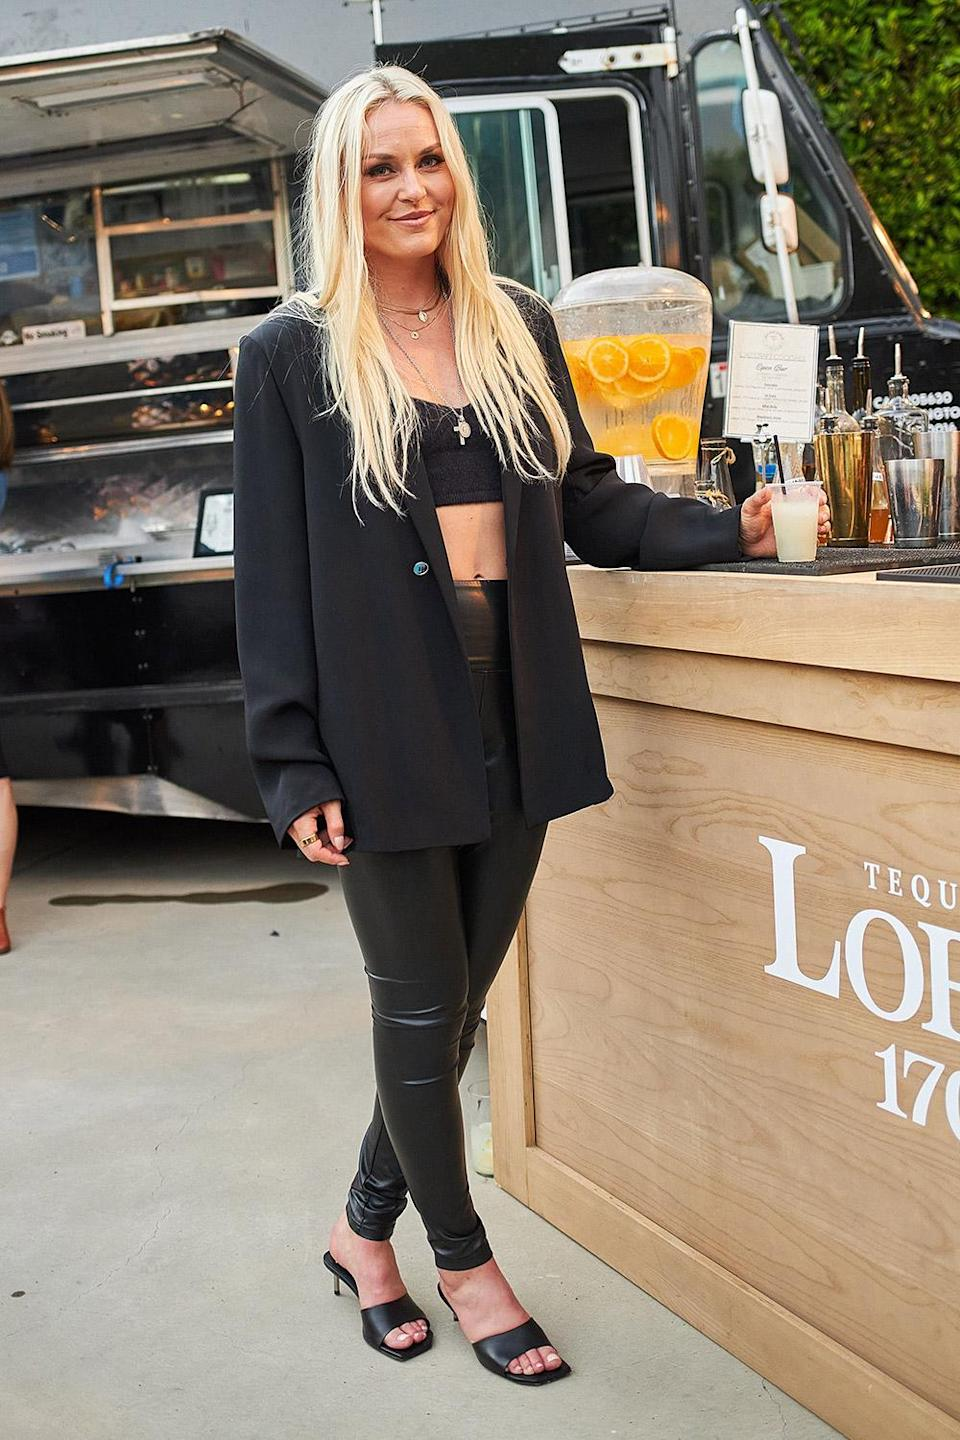 <p>Lindsey Vonn hosts an intimate housewarming party at her new home in L.A. with a Lobos 1707 Tacos & Tequila theme, courtesy of her new beau, the brand's founder and chief creative officer, Diego Osorio. </p>